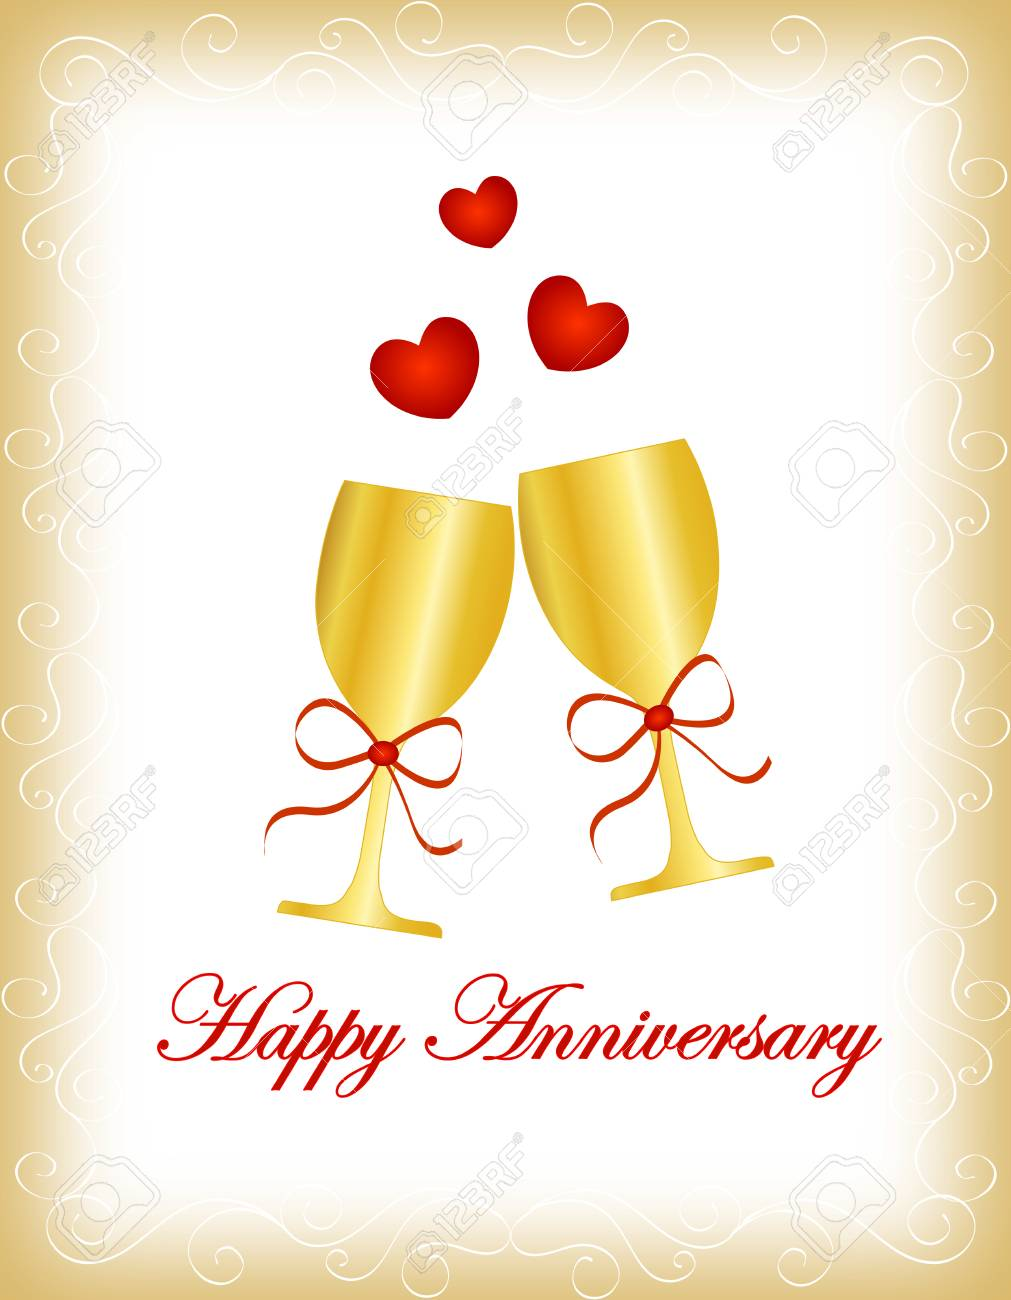 Happy Anniversary Greeting Card With Two Golden Wine Glass With